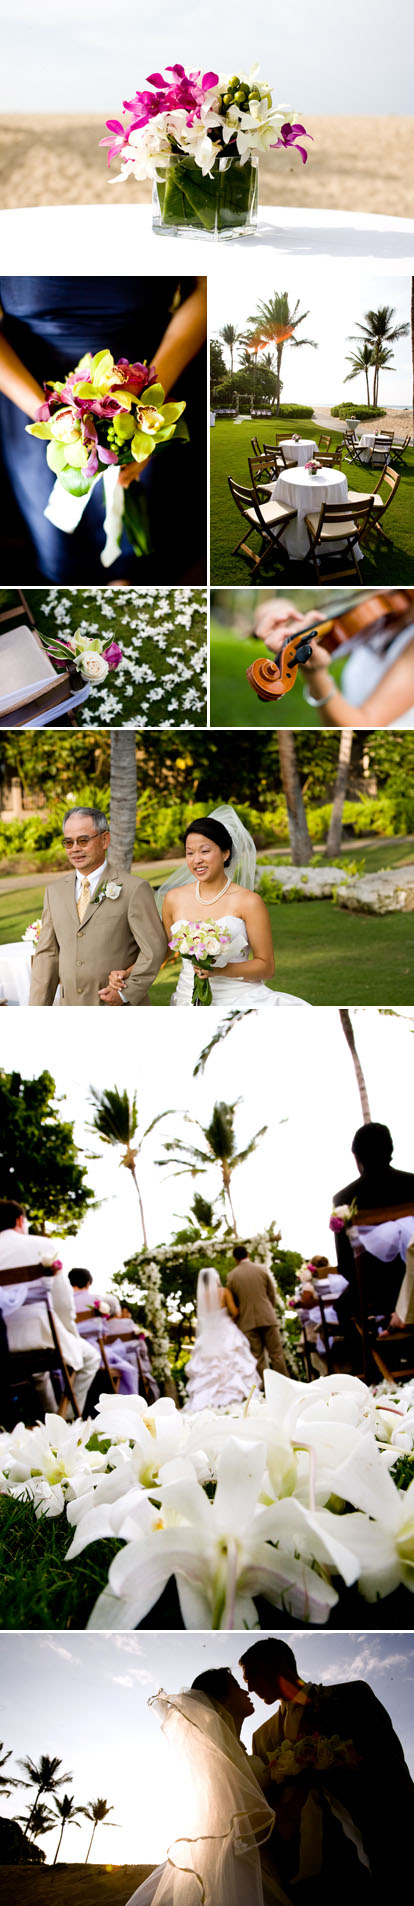 Hawaii destination wedding images by John and Joseph Photography